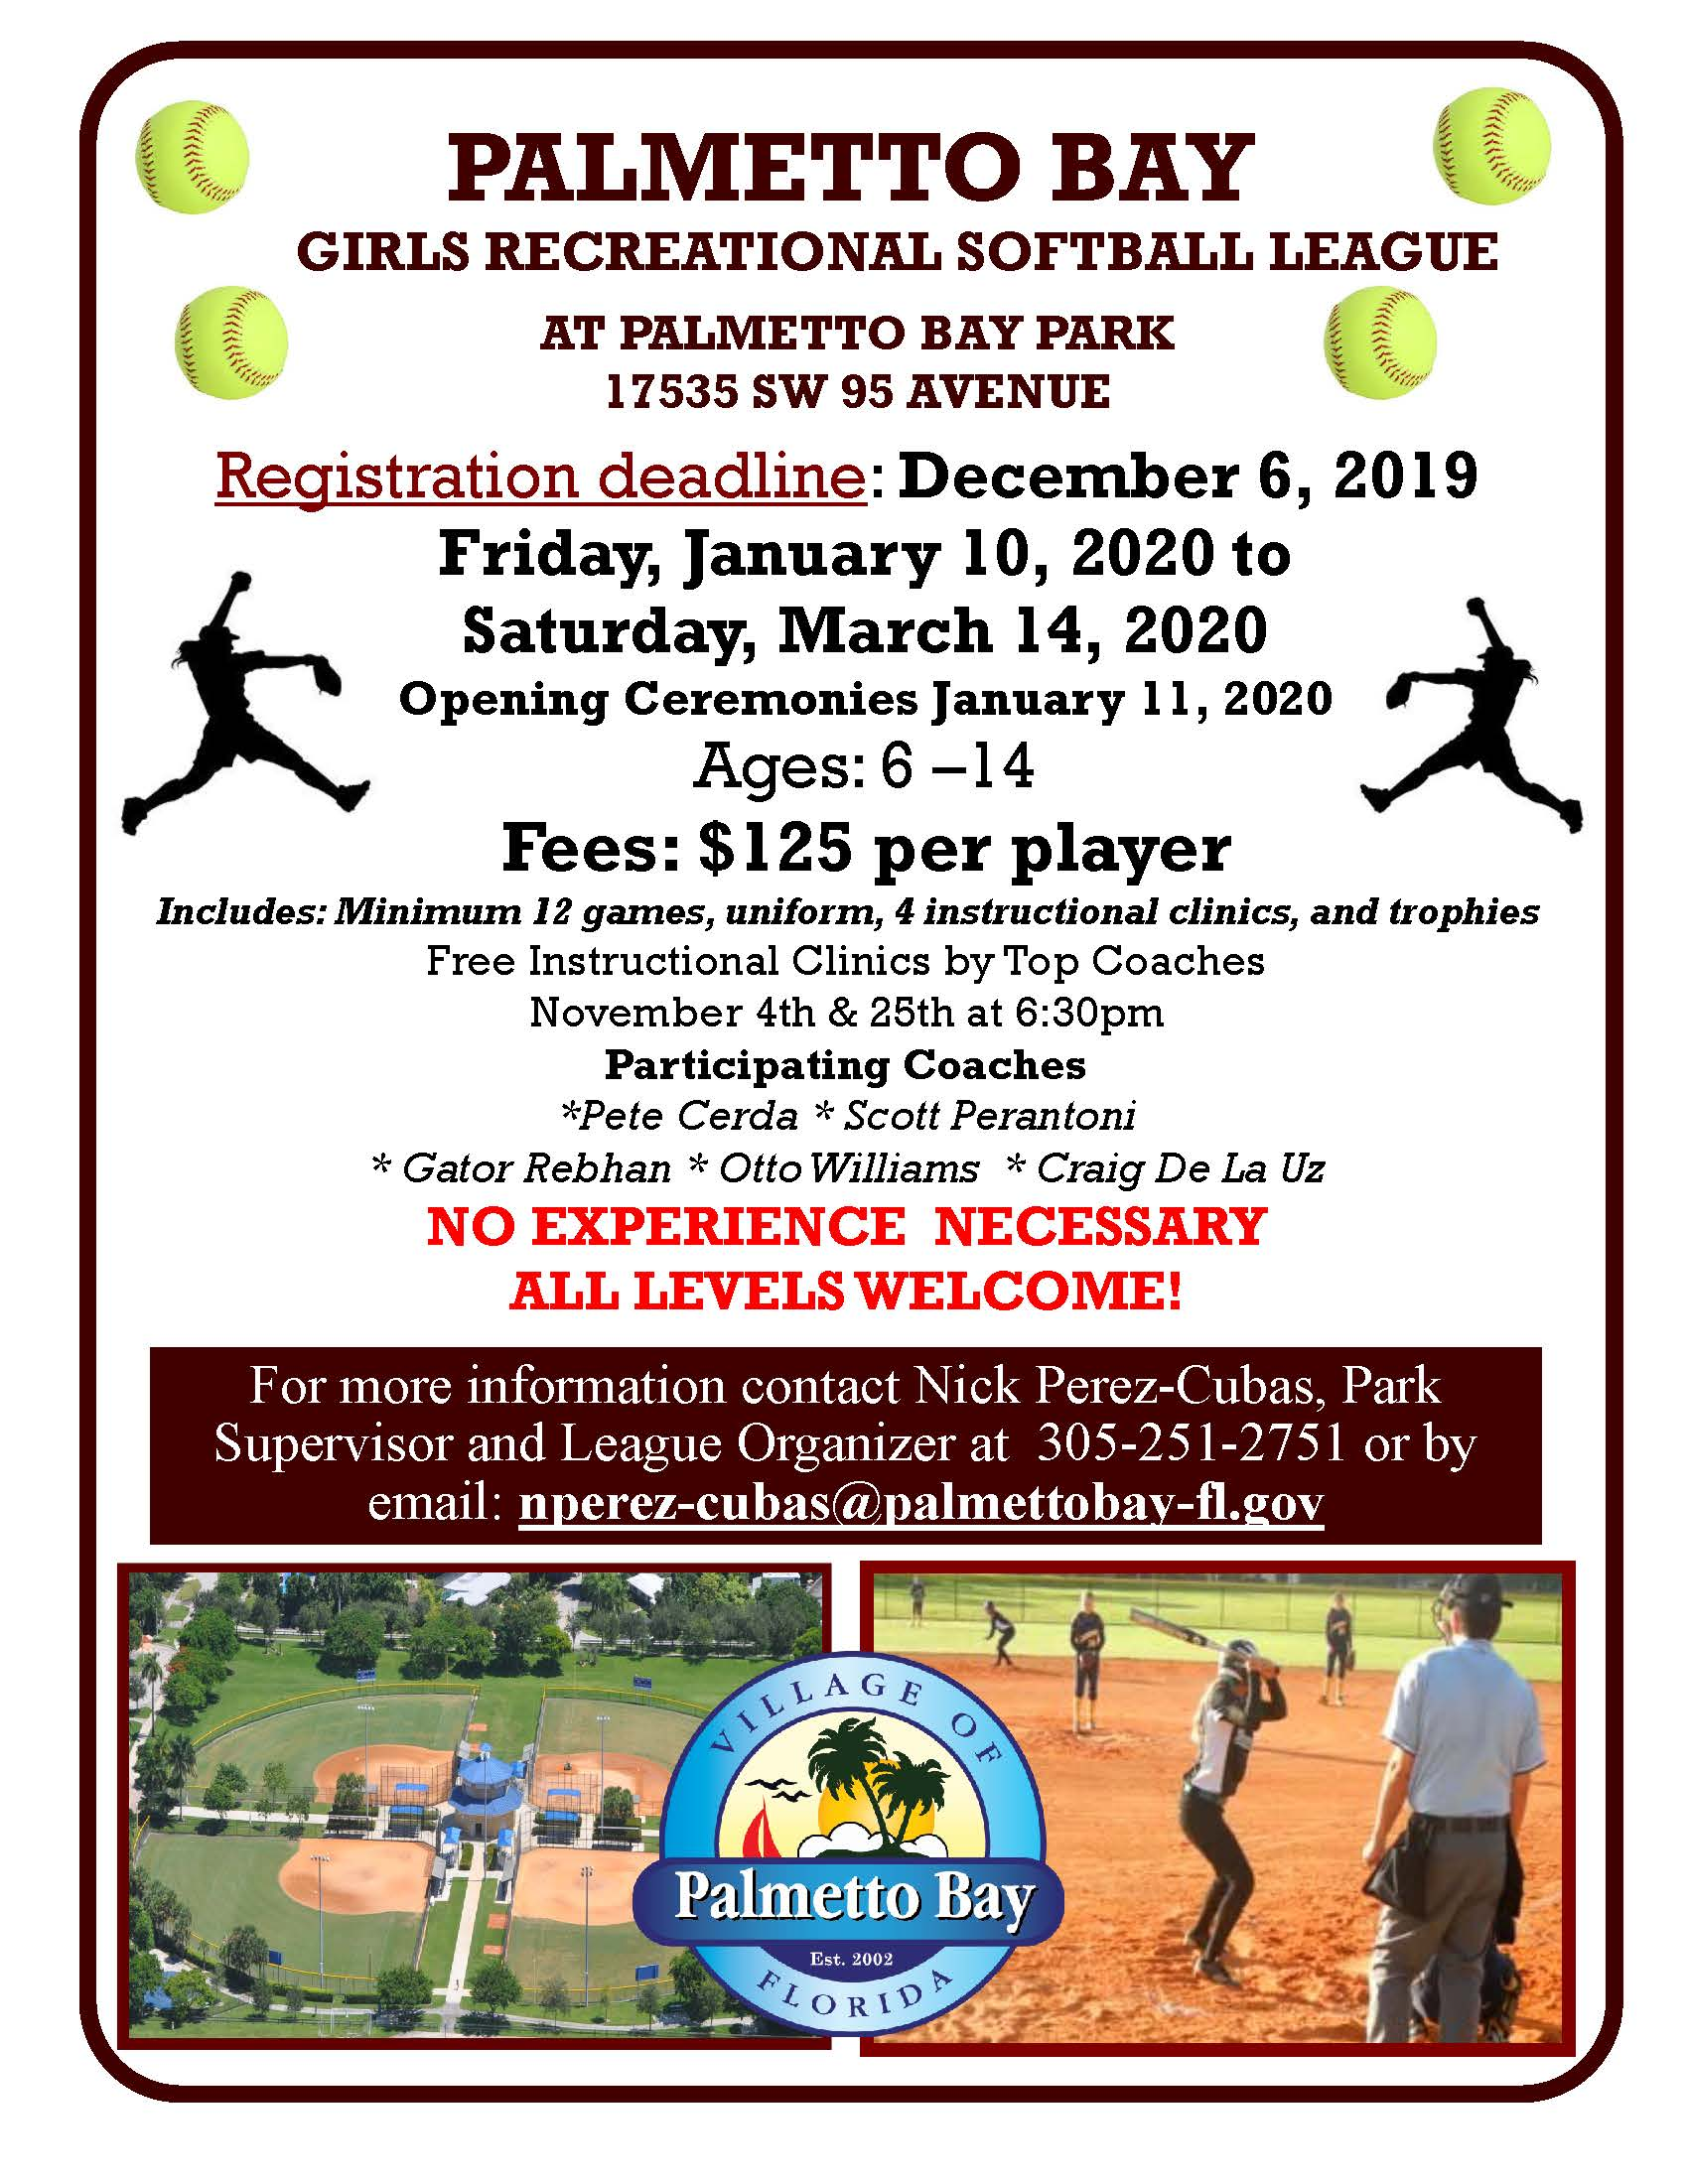 Palmetto Bay Girls Recreational Softball League at Palmetto Bay park 17535 SW 95 Avenue. Registratio